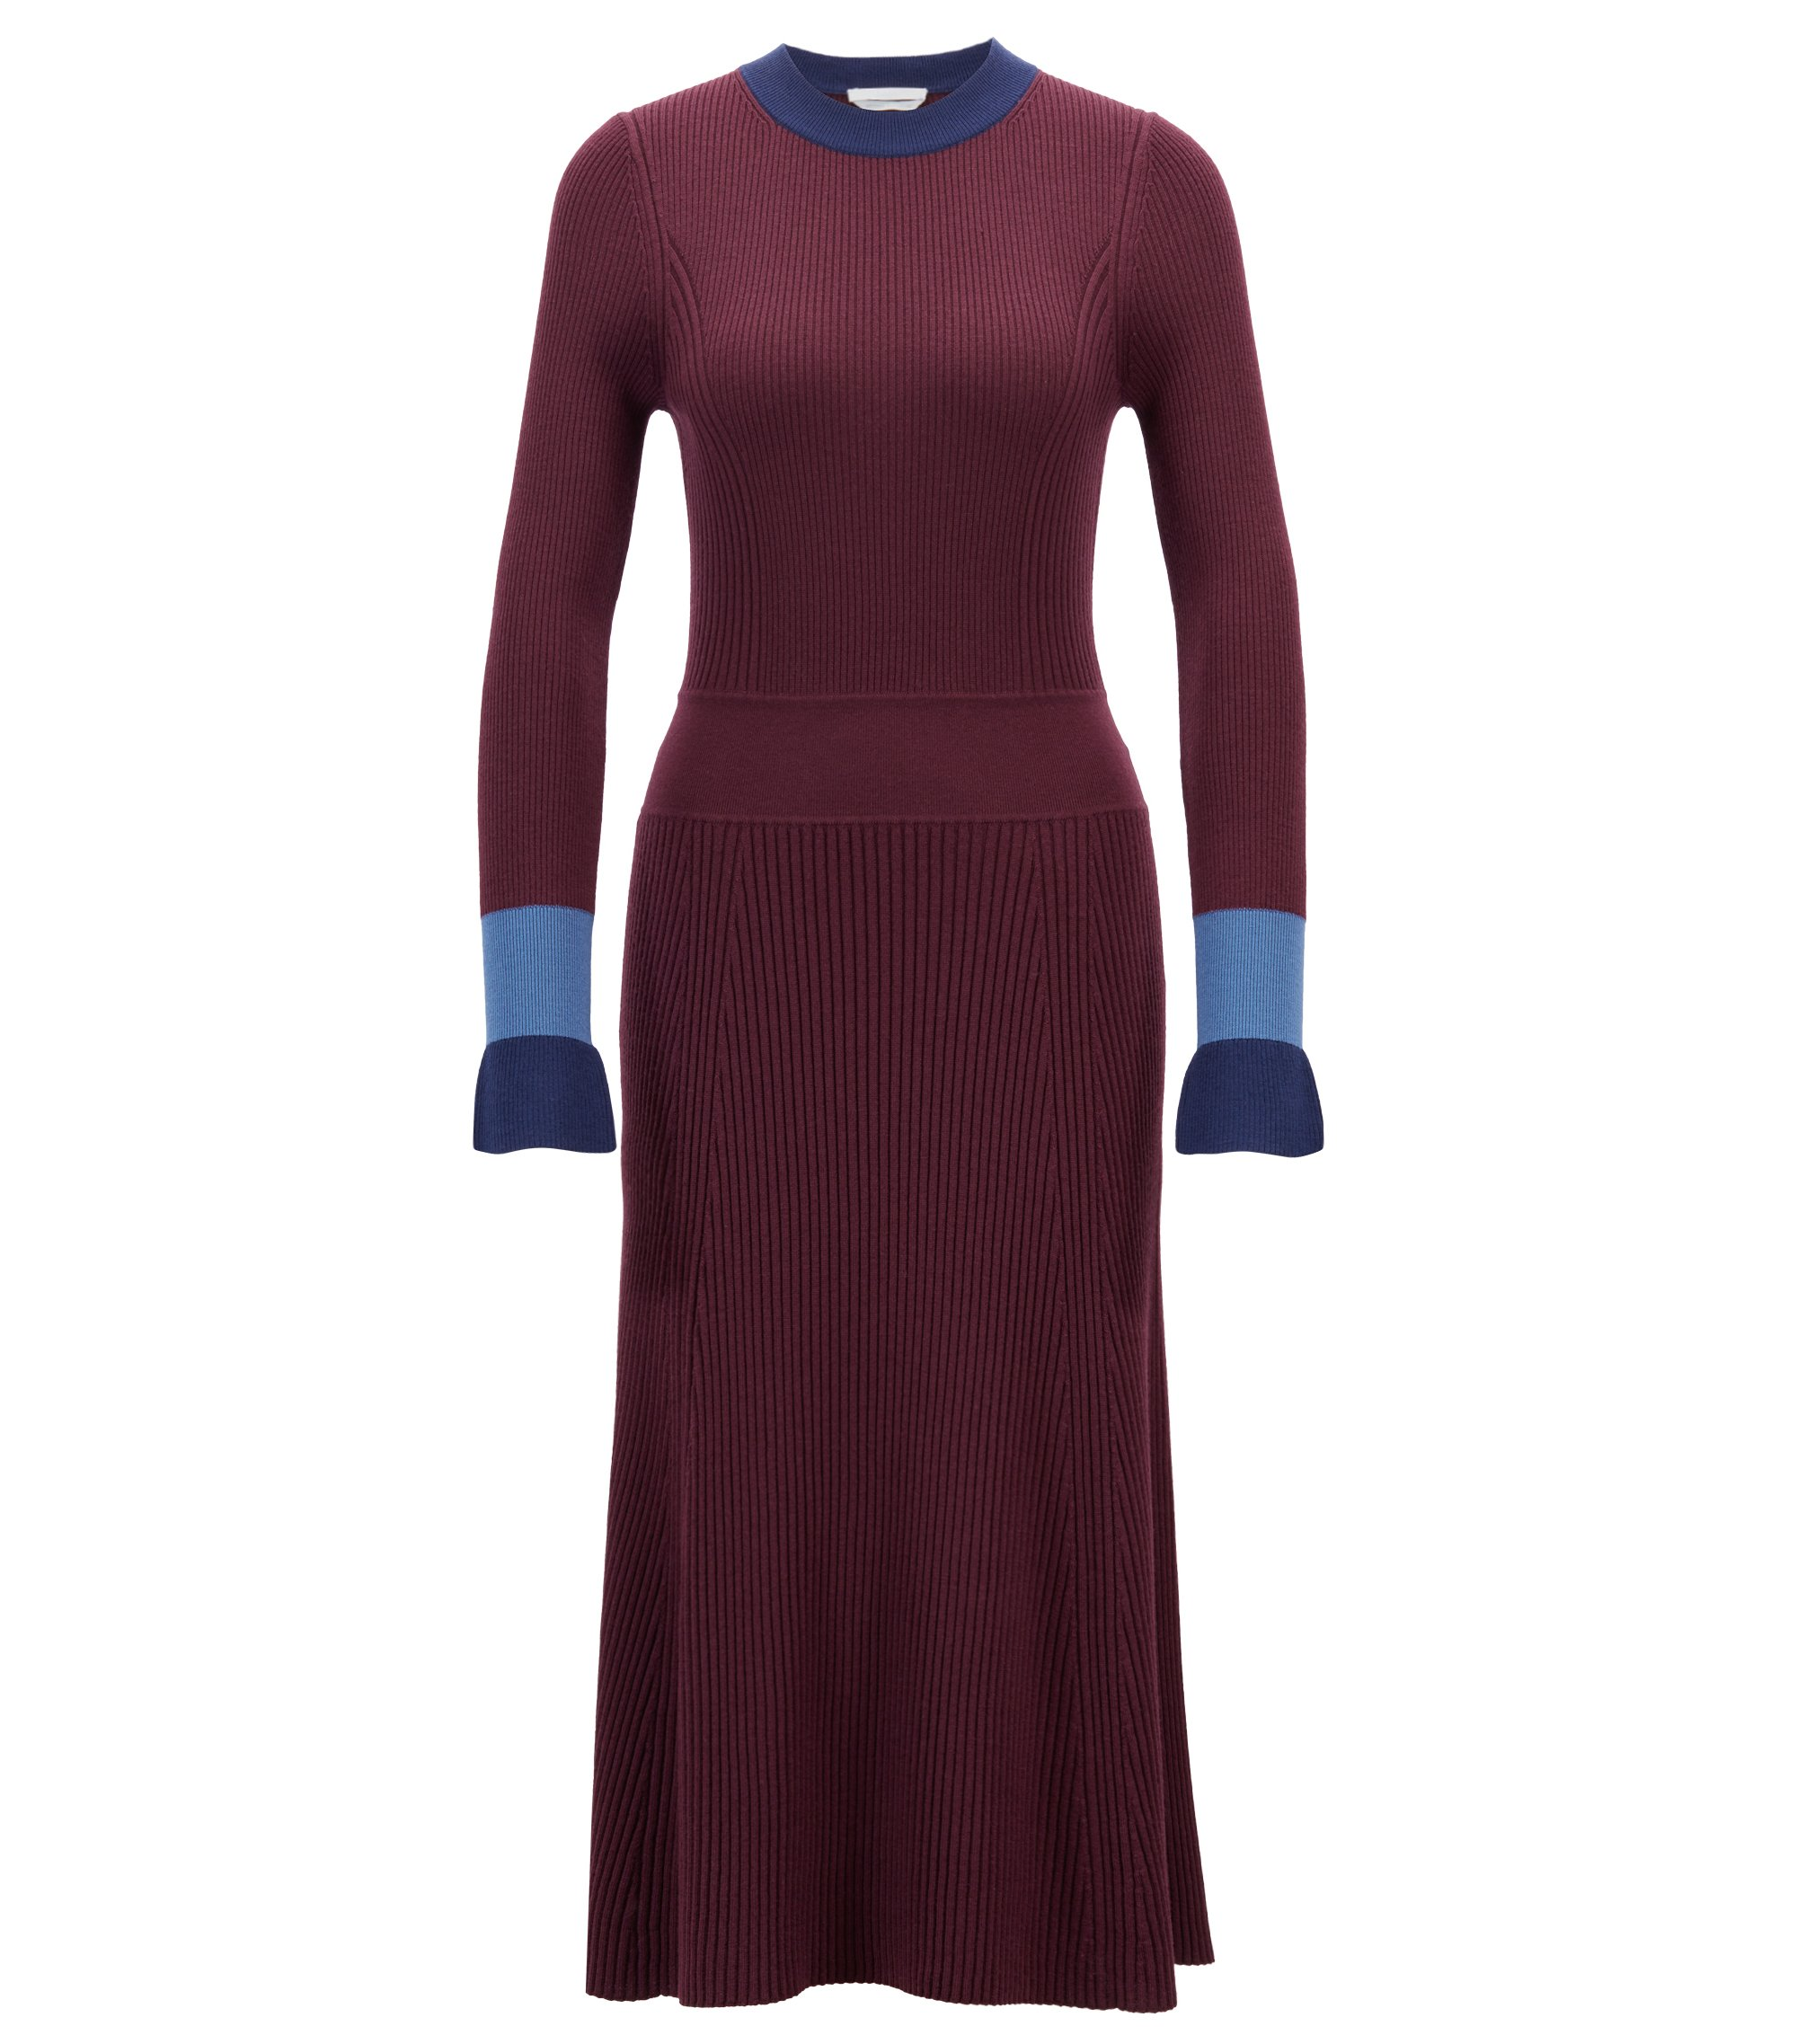 Knitted long-sleeved dress with colourblocking, Patterned